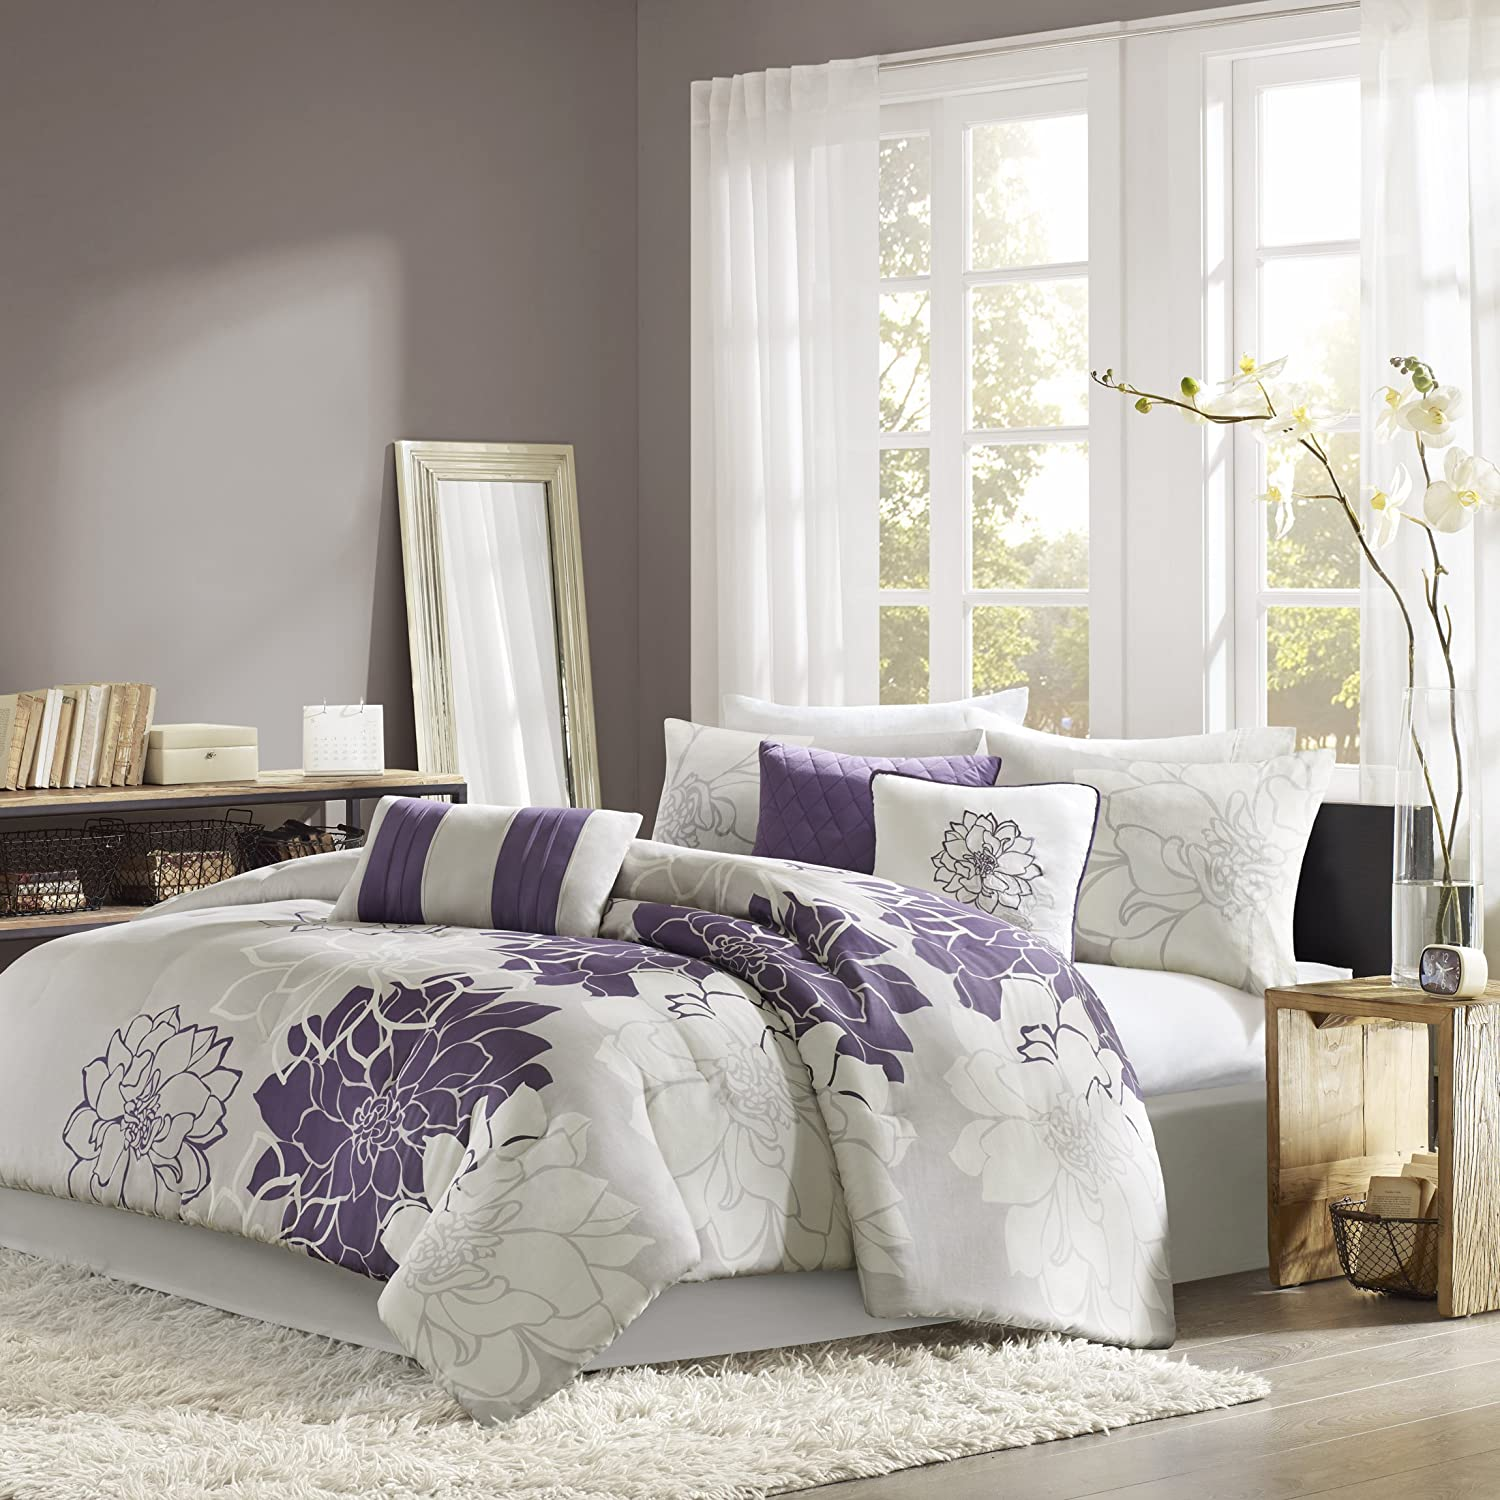 deep purple for pict snif bed grey sheets astonishing chargerstevecom sets bedding uncategorized trends u style bedroom and